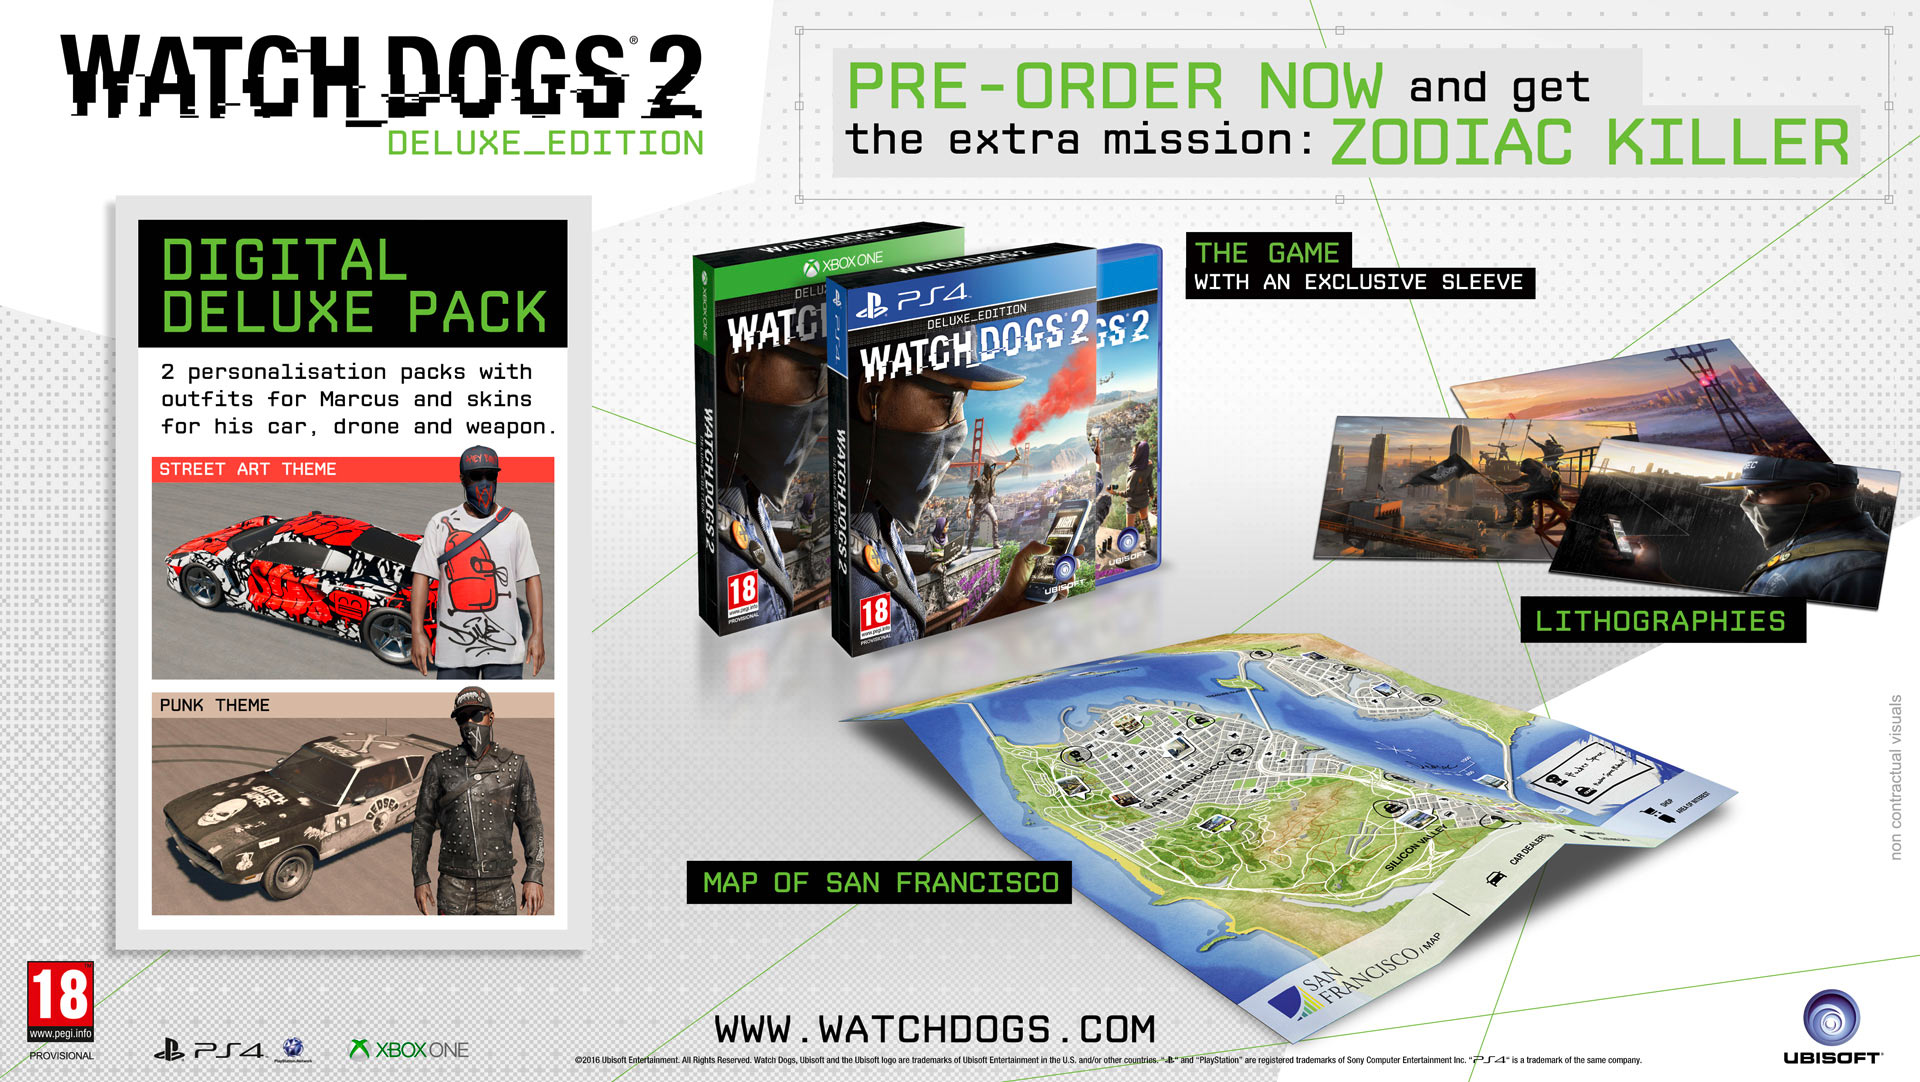 Watch Dogs 2 - Deluxe Edition.